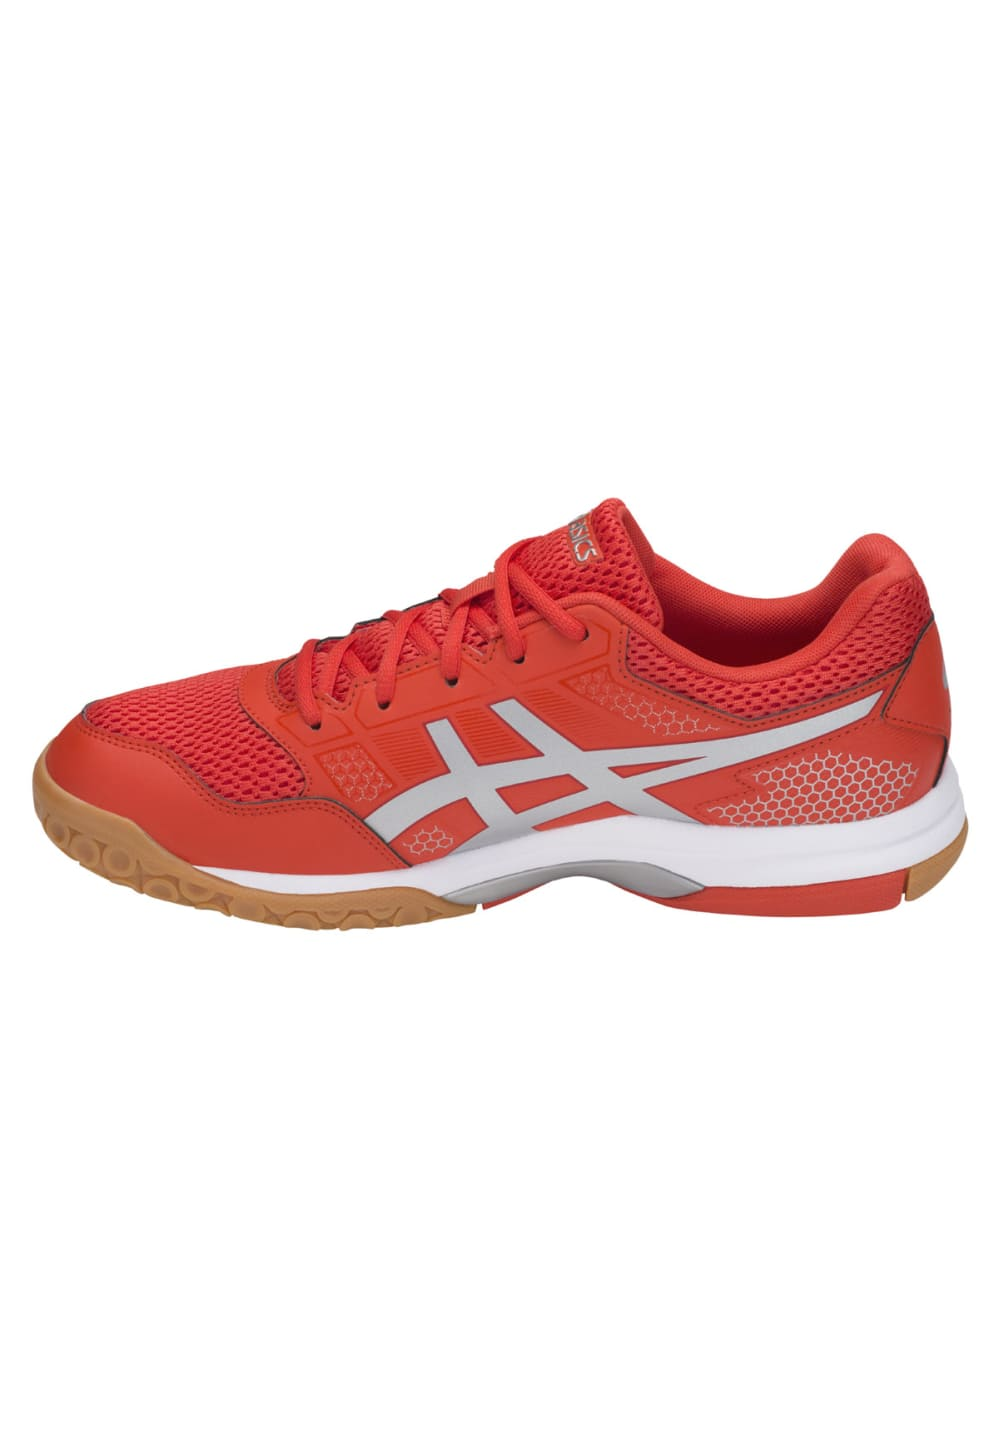 8 Rouge De Asics Gel Chaussures Pour Volleyball Homme Rocket